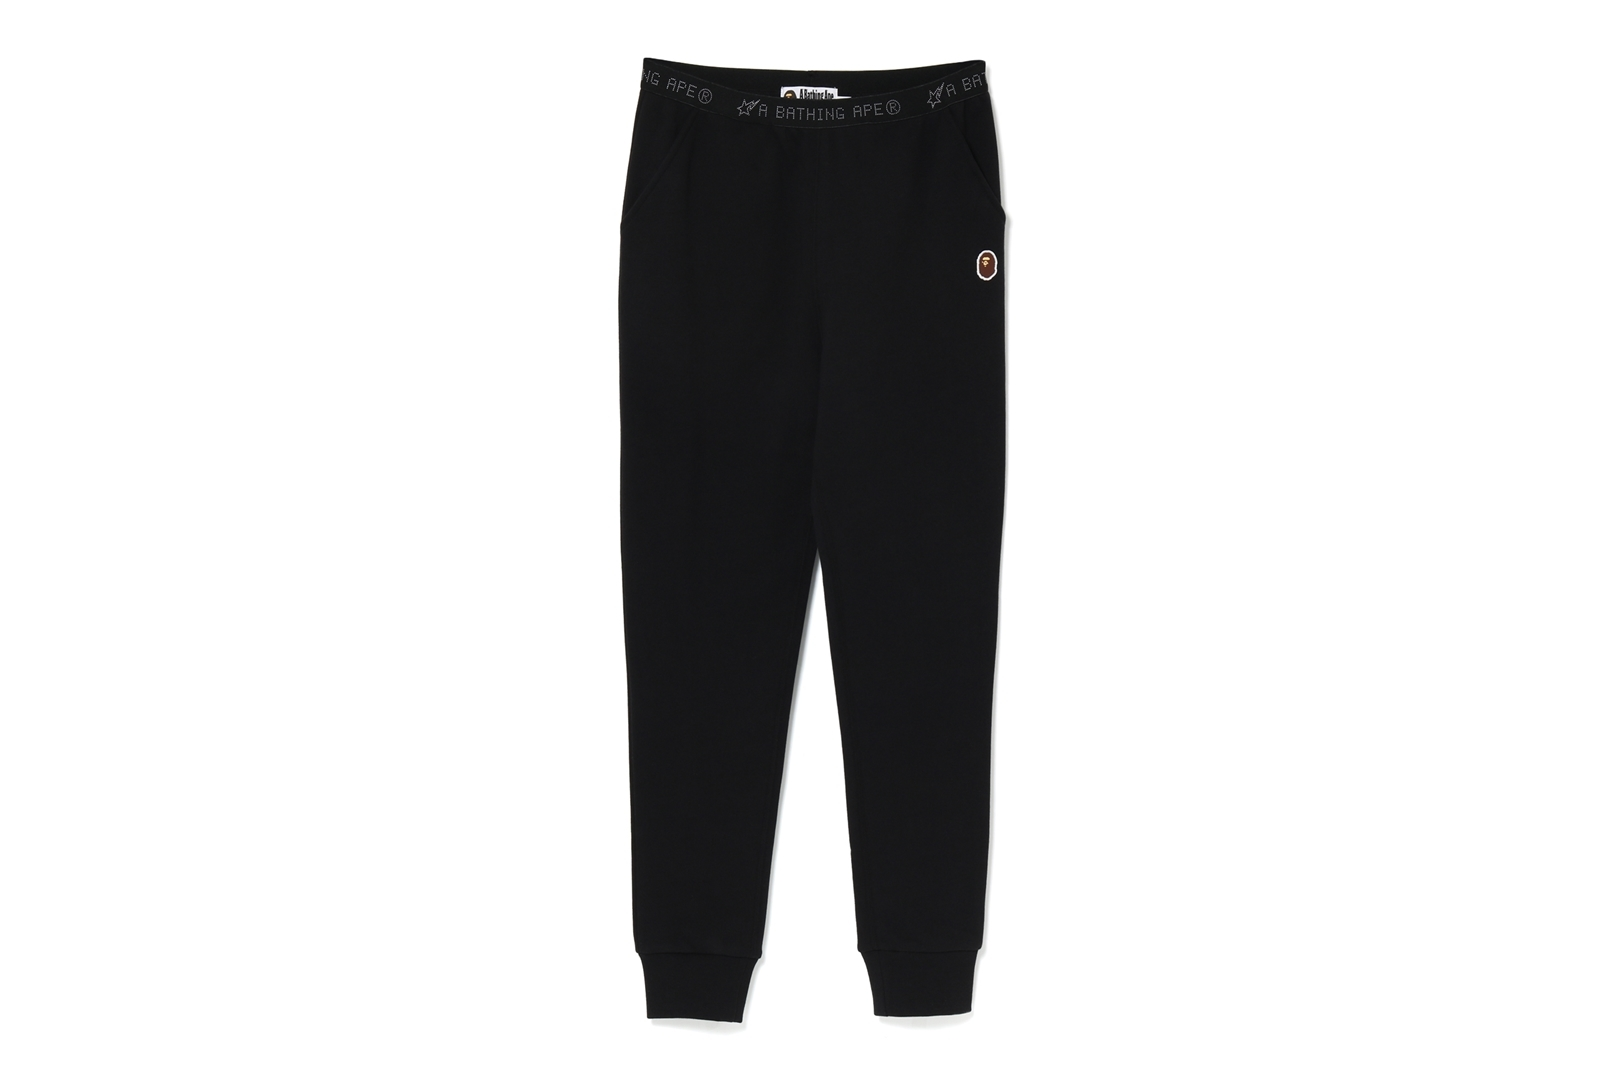 APE HEAD ONEPOINT SLIM SWEAT PANTS_a0174495_15123306.jpg